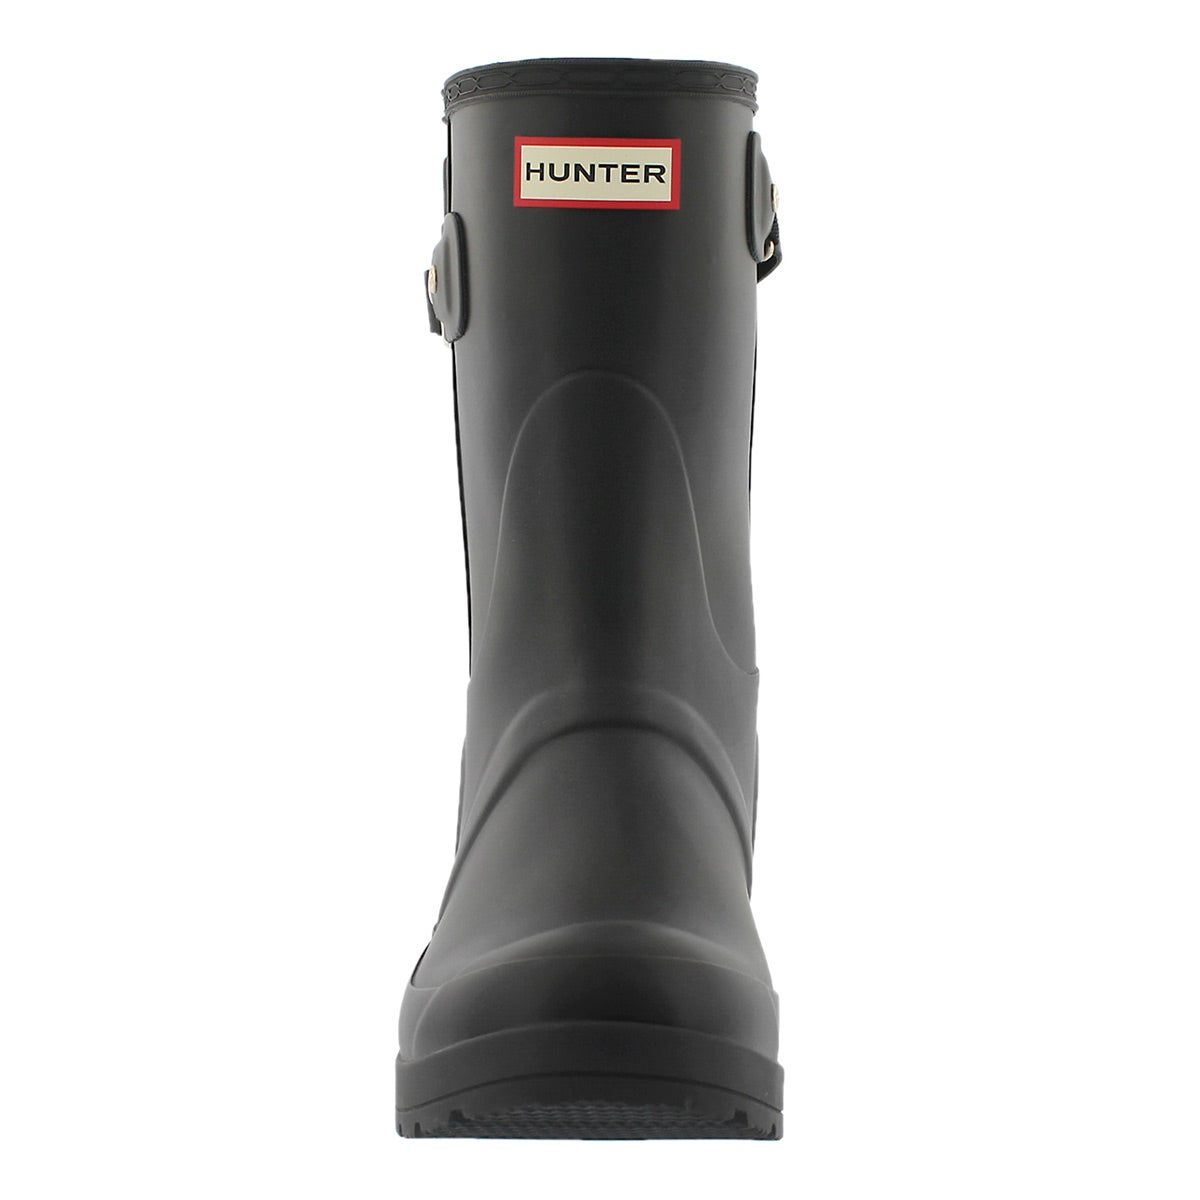 Hunter BOOTS Women's Original Short Wedge Back Strapstuds Rain ...